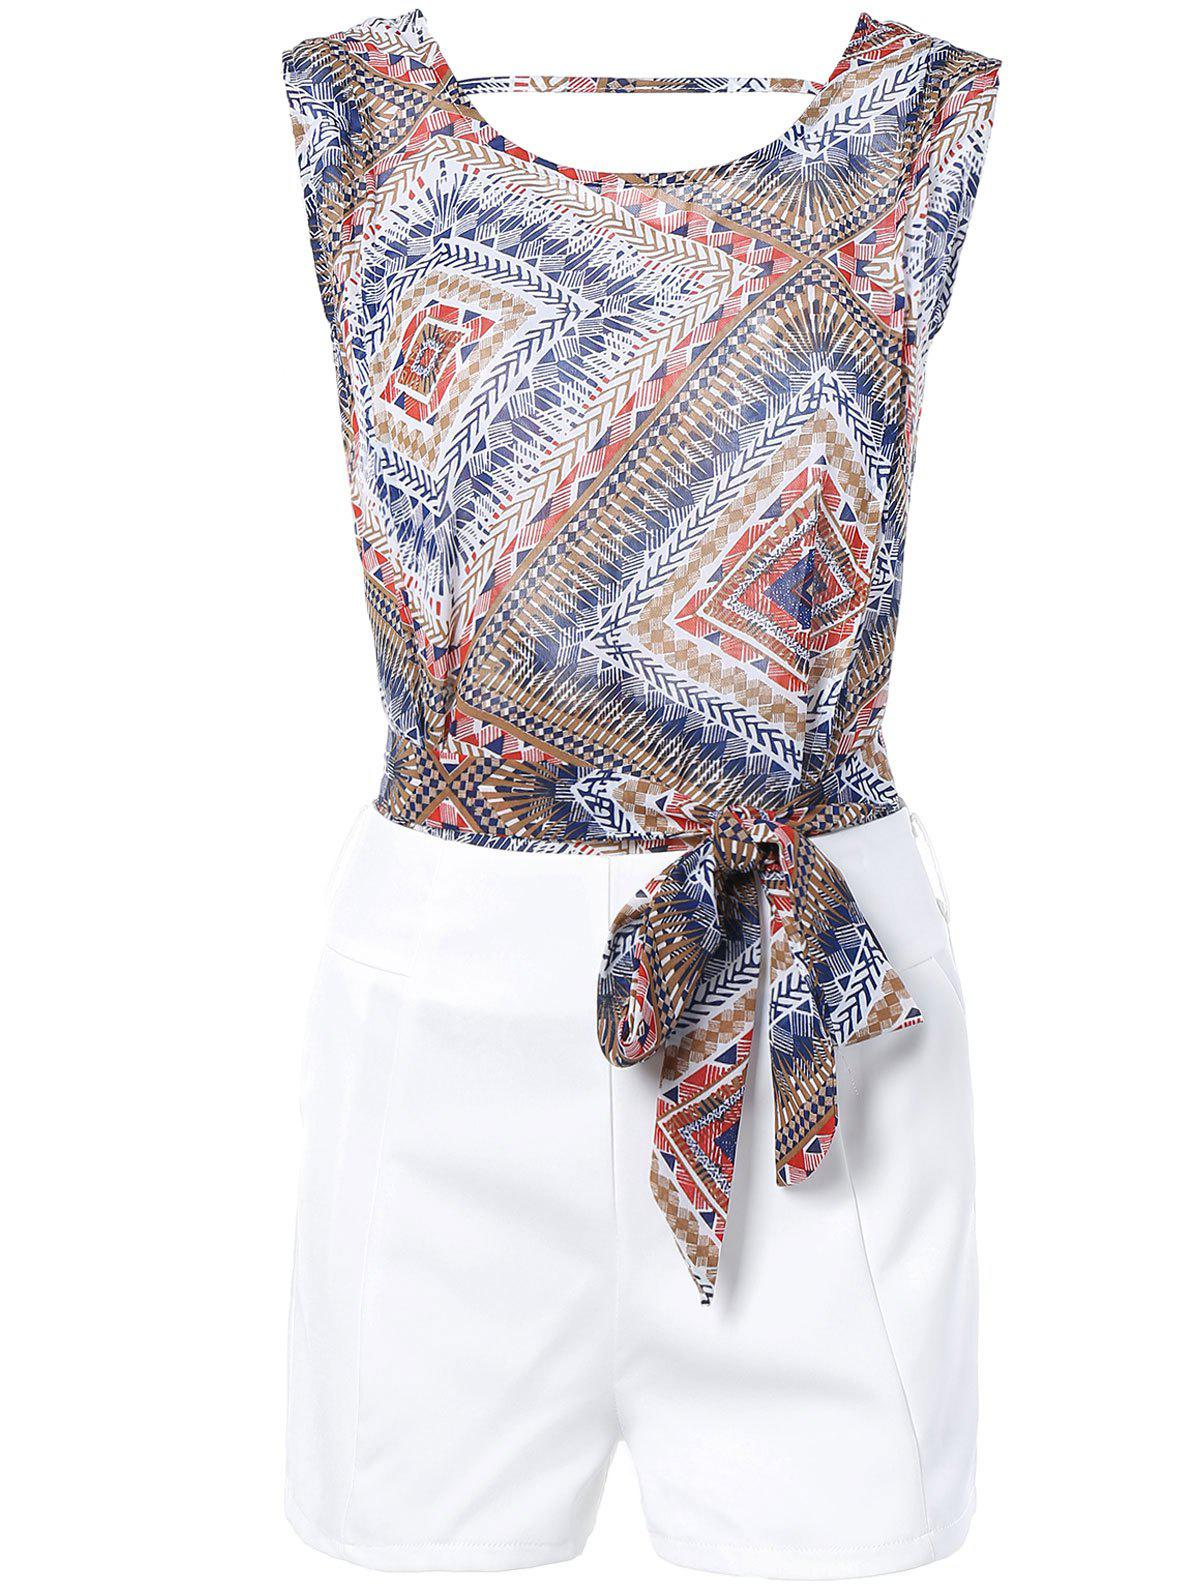 Geometric Print Tie Front Sleeveless Blouse + White Shorts Twinset For Women - COLORMIX XL